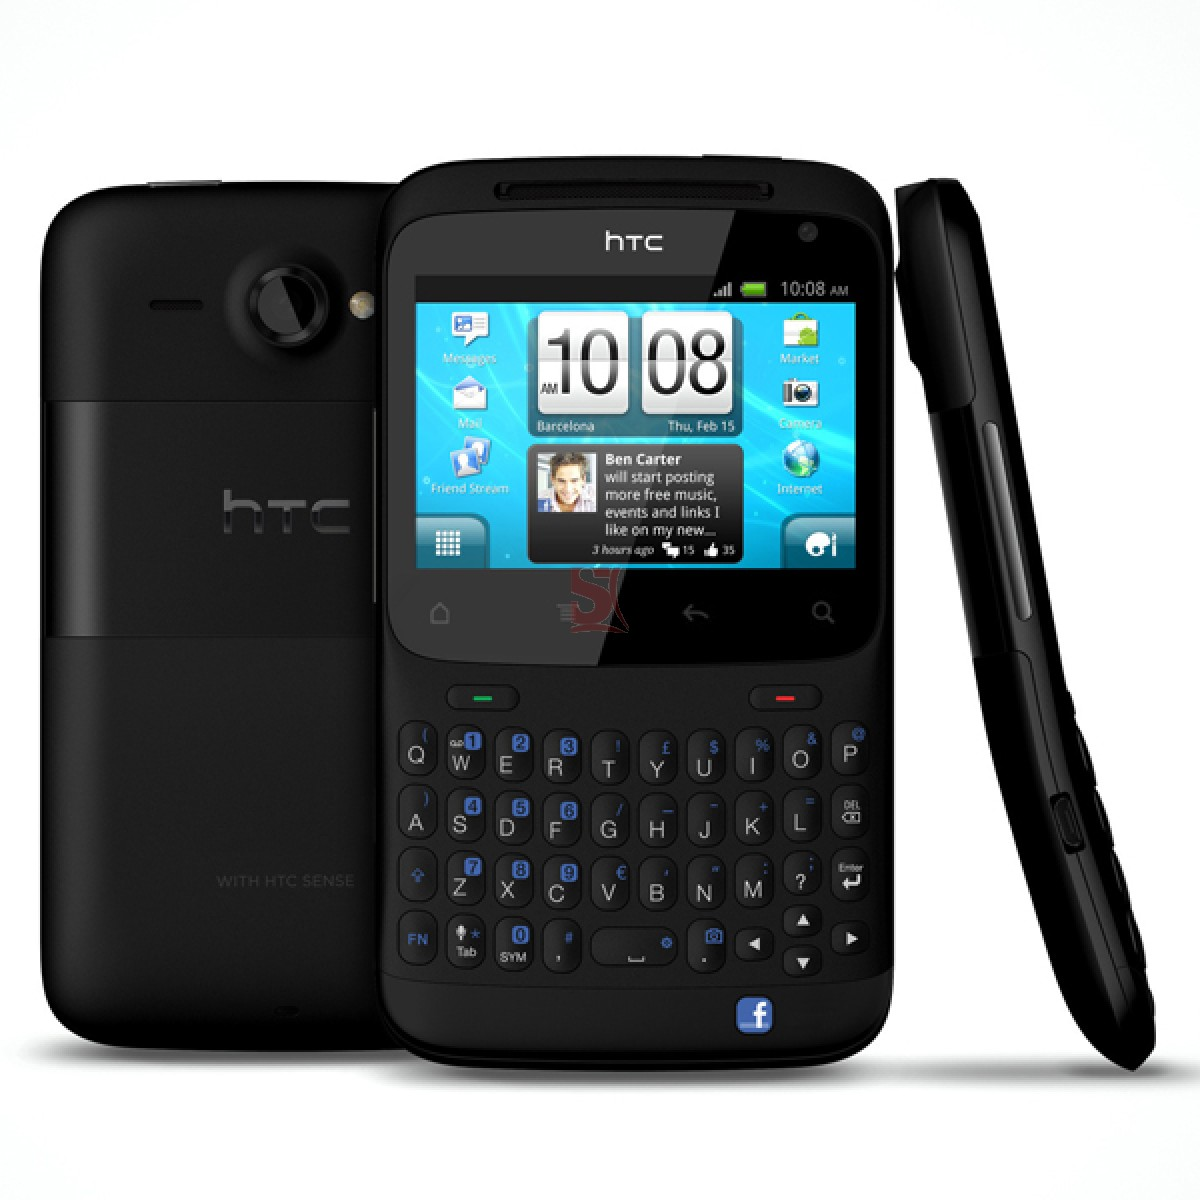 Camera Htc Qwerty Android Phones prices of cheap htc android smartphones in nigeria my smartphone chacha was released february 2011 it has a qwerty keyboard wlan wi fi 802 11 bg hotspot v3 0 bluethooth w